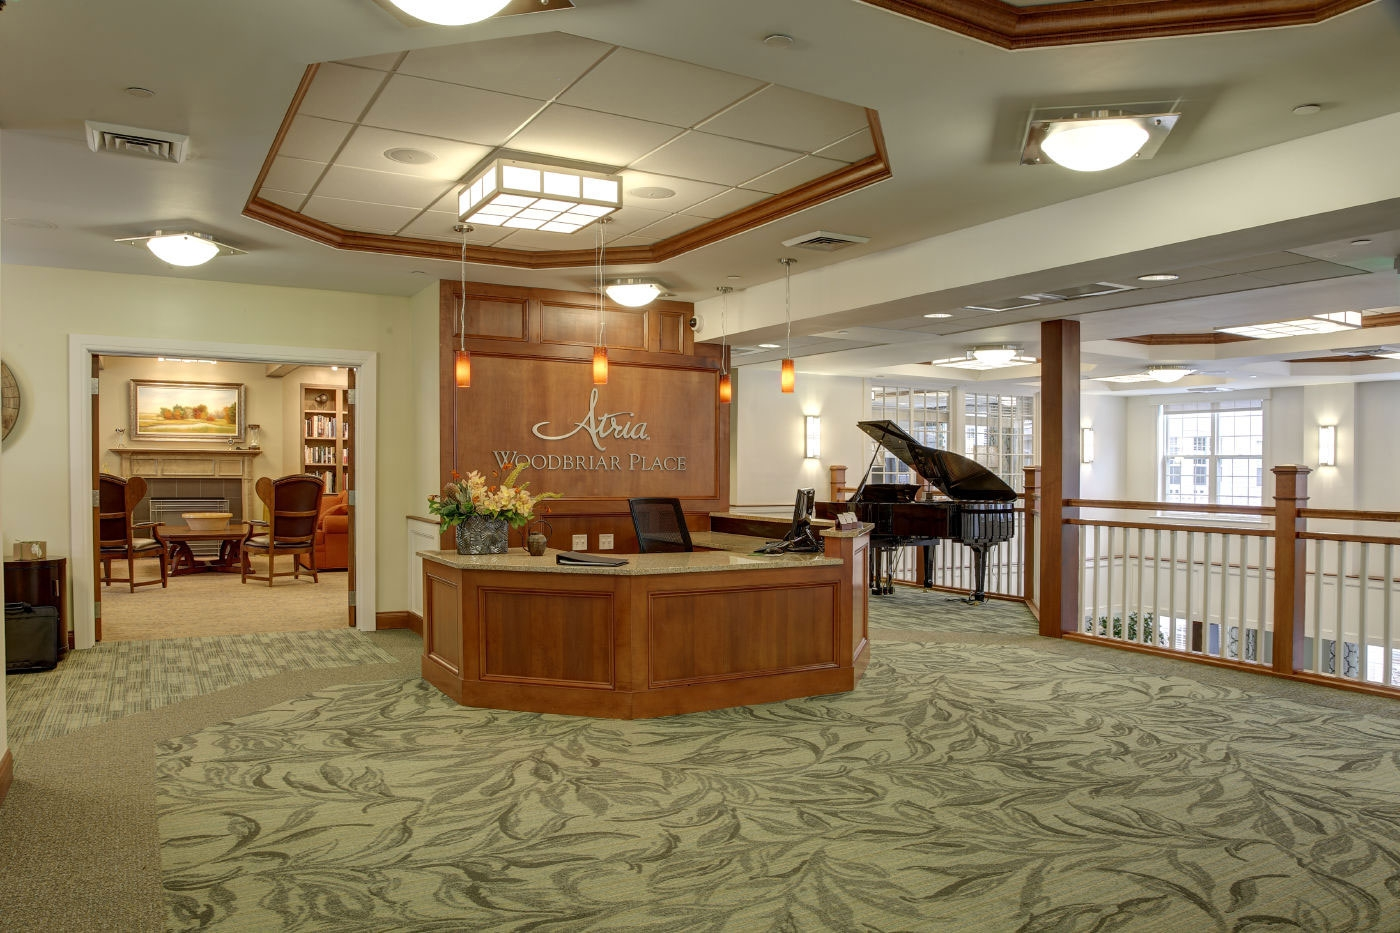 Showcasing our interior design skills of a spacious, inviting second floor entertainment area in an assisted living/memory care community